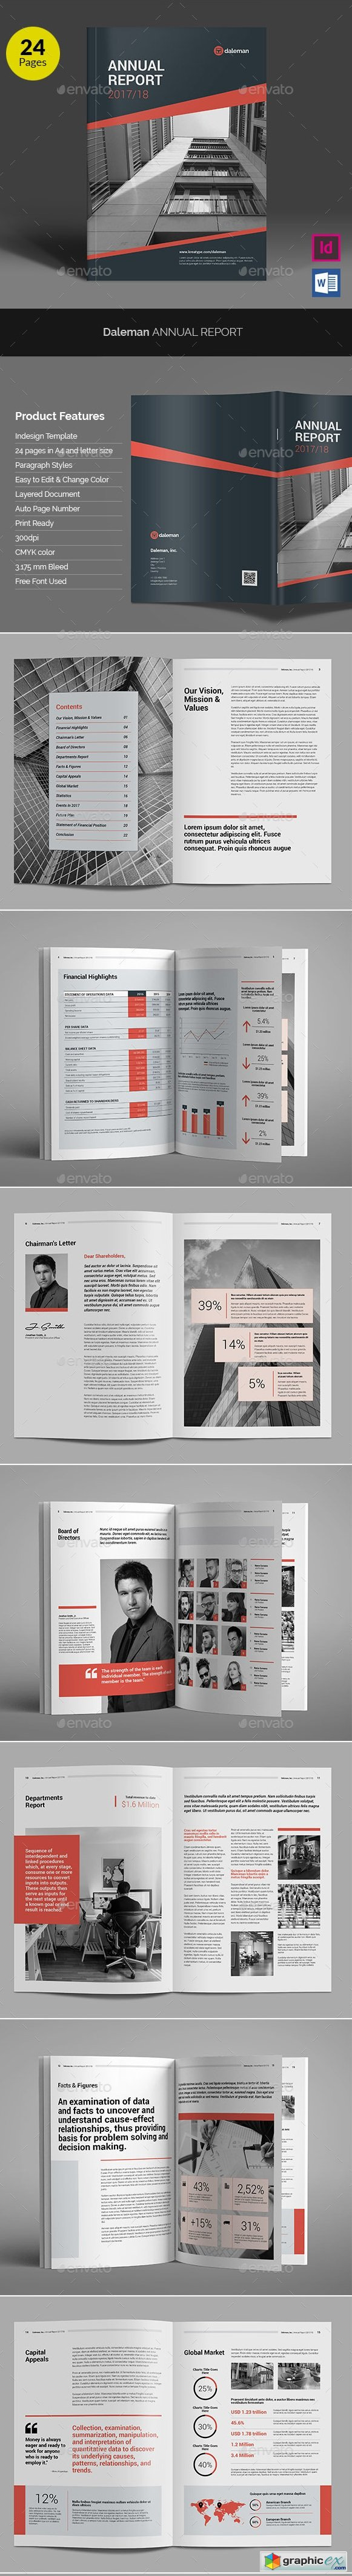 Daleman Annual Report v02